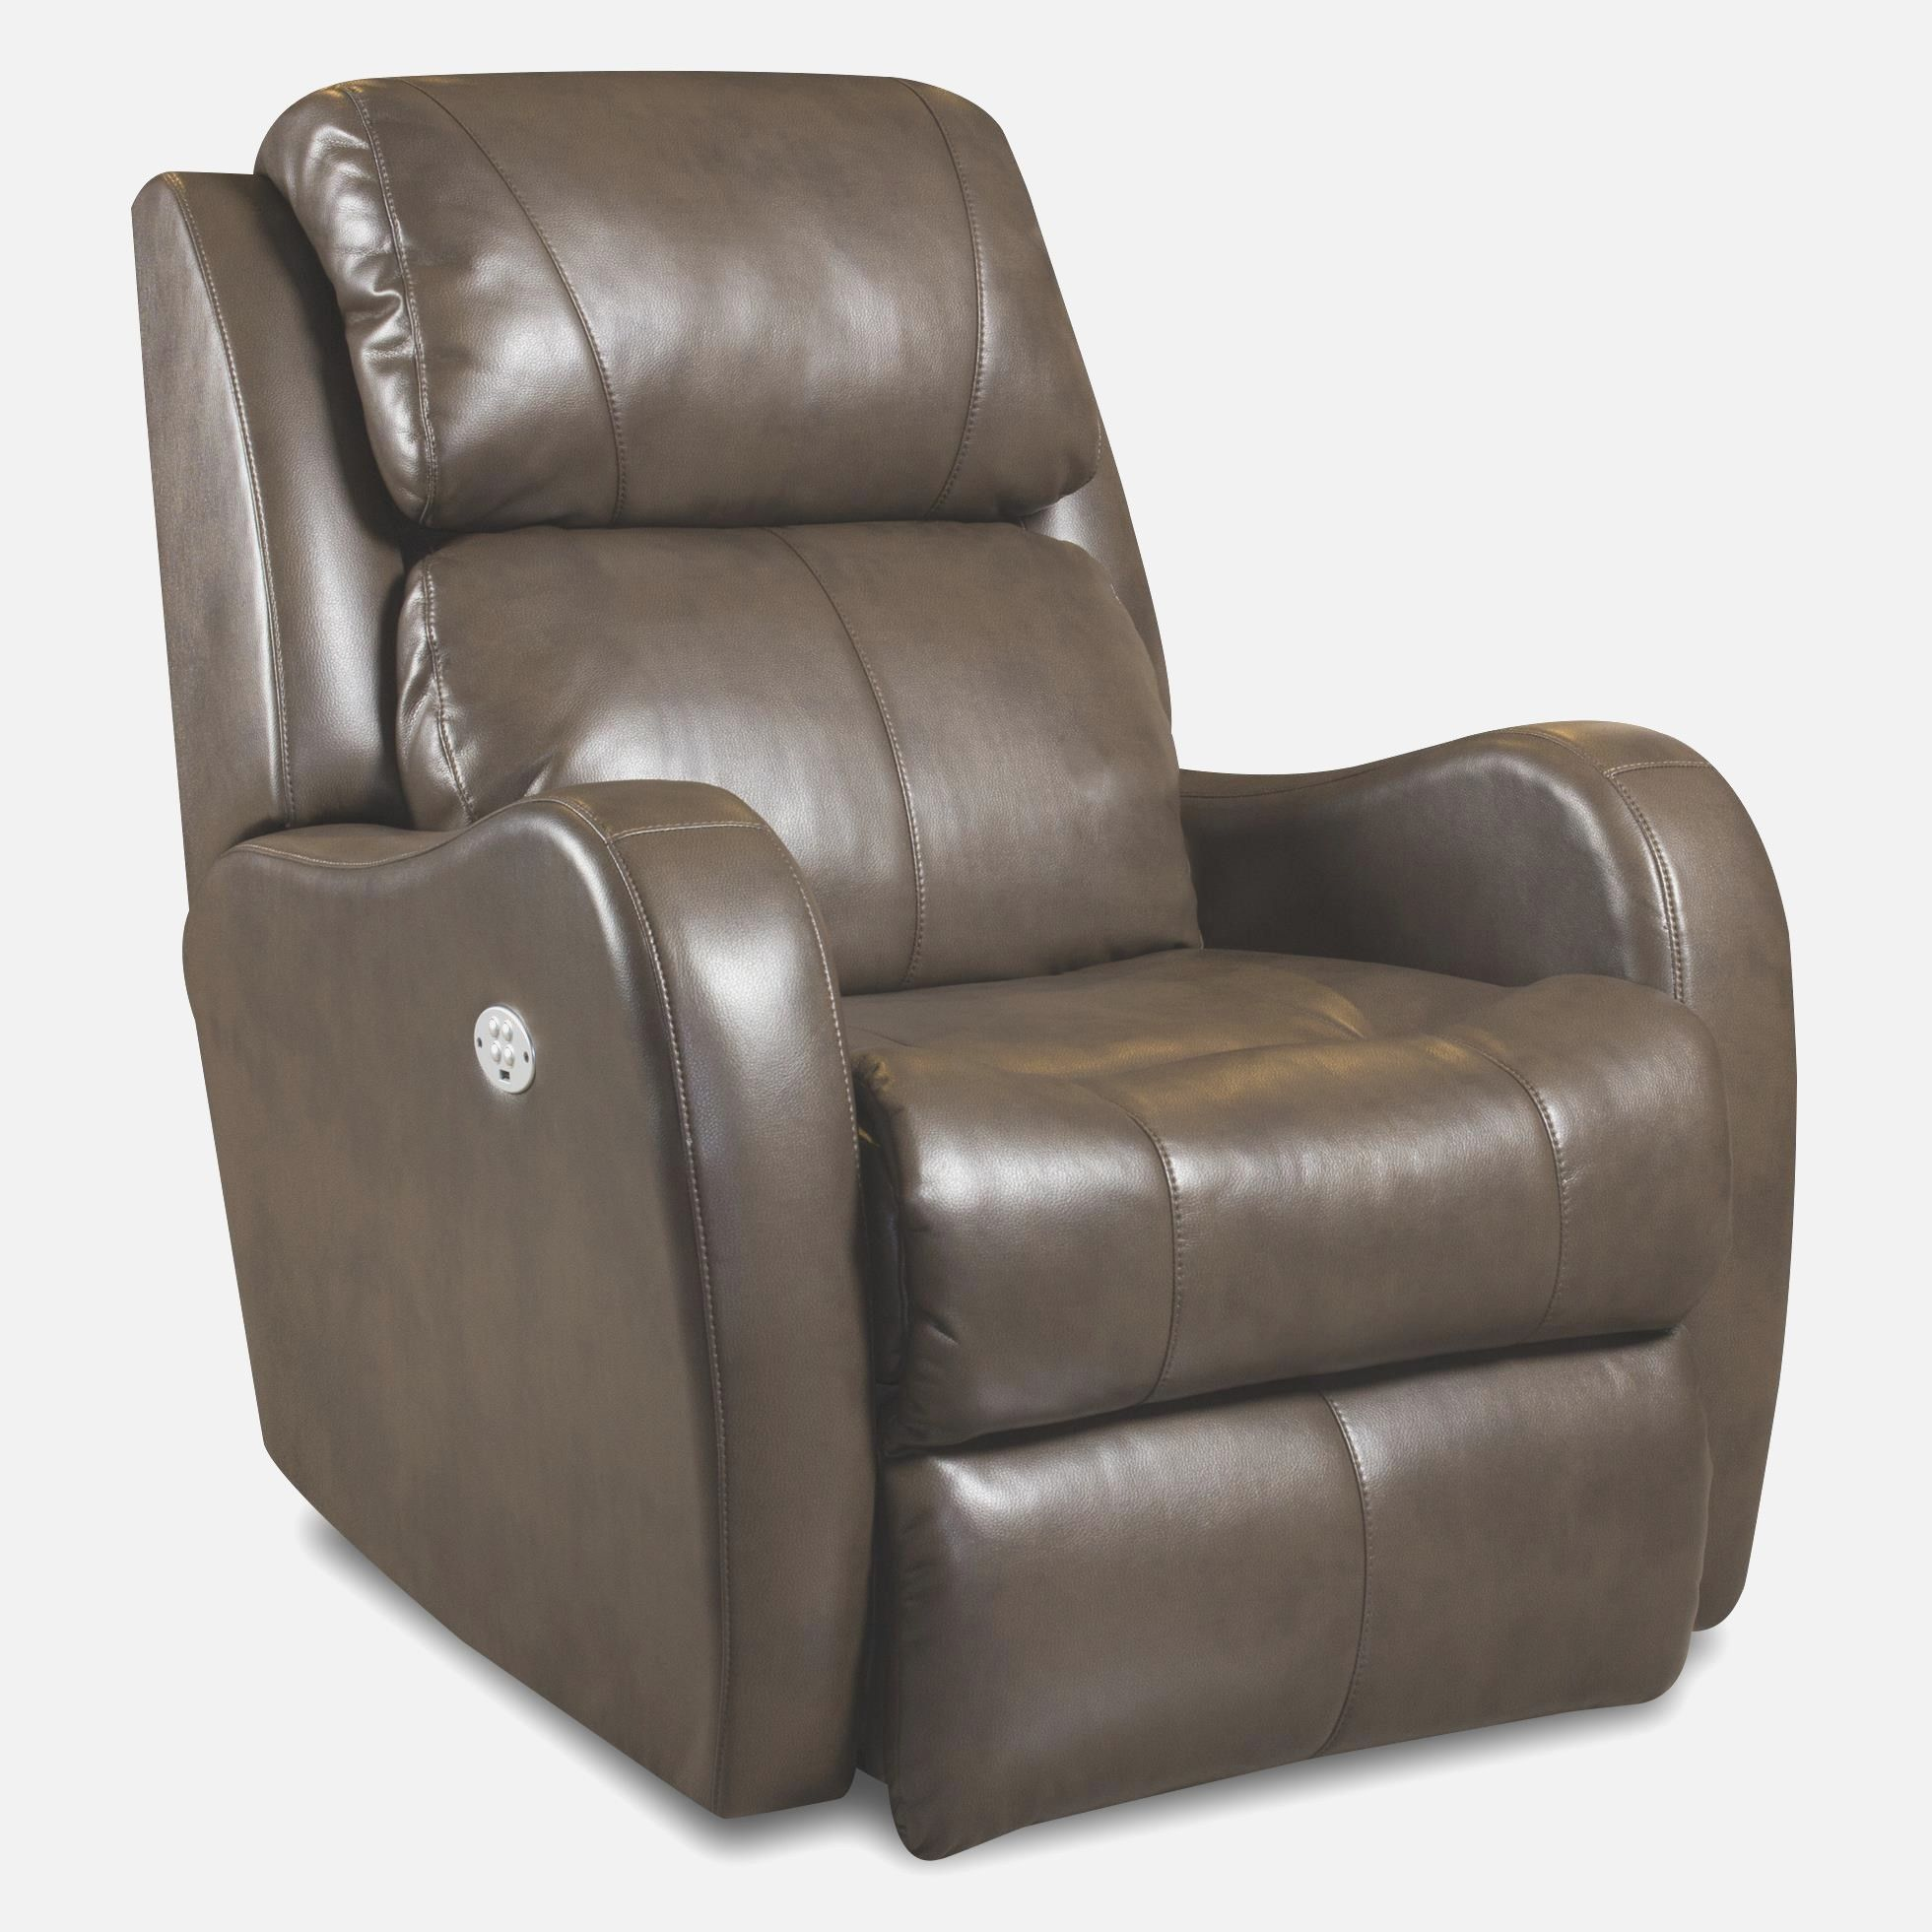 headrest power trim lay item height products primopower primo flat recliner chairs width motion southern threshold chair